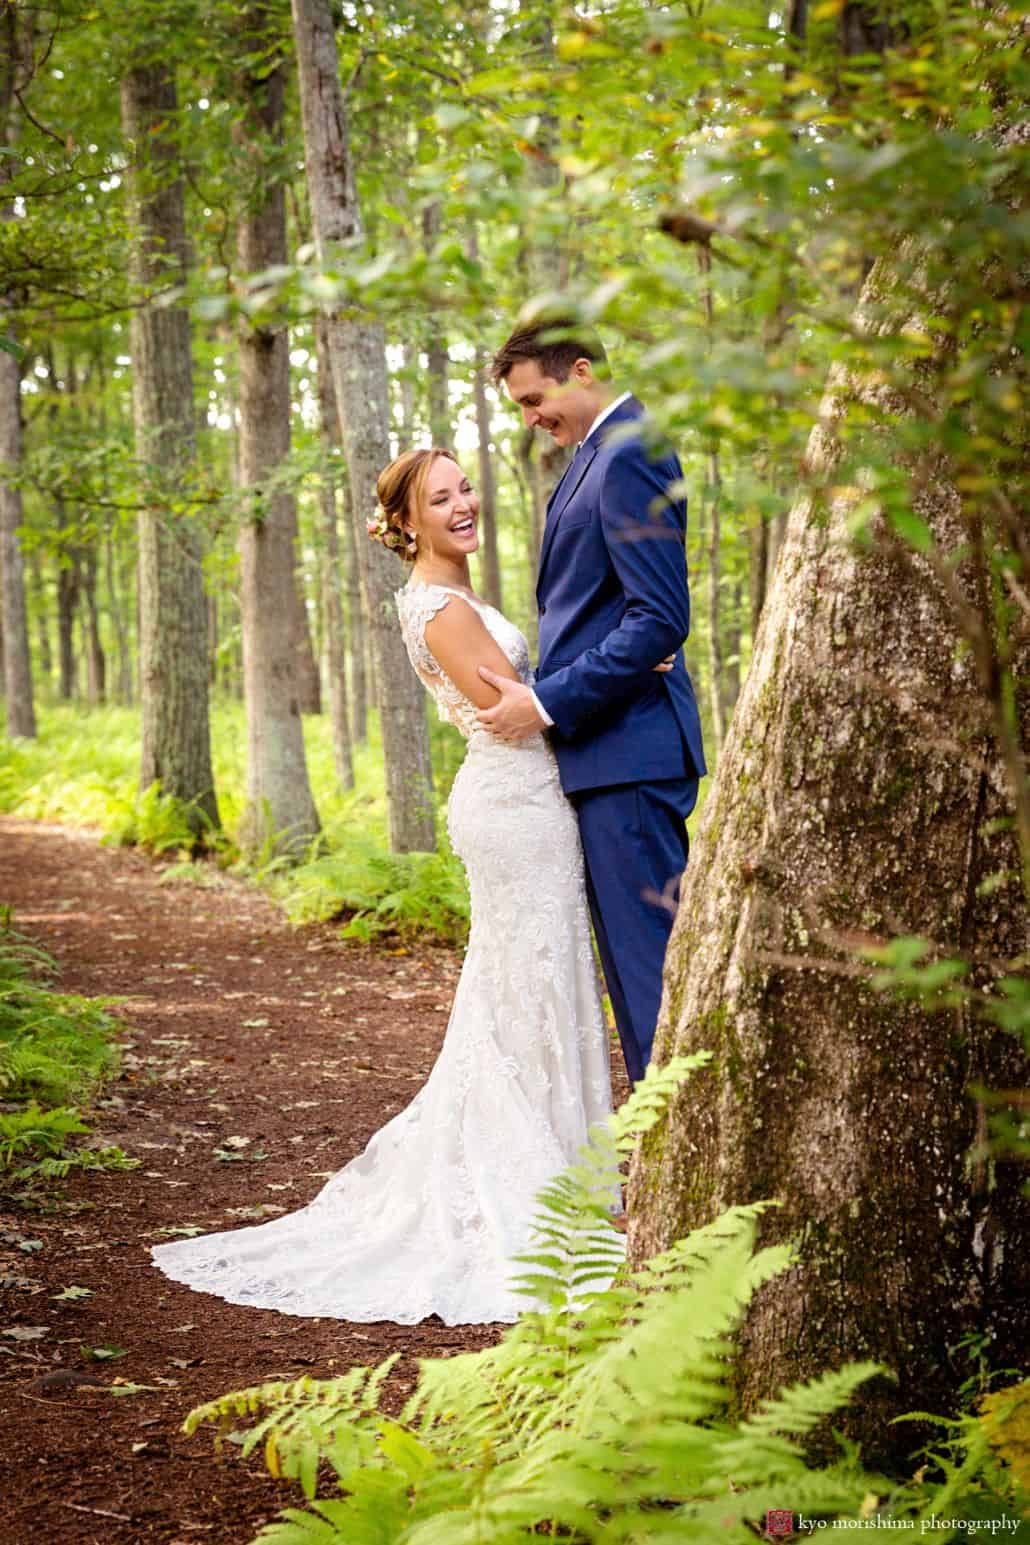 Bride and groom smile on mulched path in wooded area at Woodloch Pines resort, Castle Couture bridal gown, dark blue groom's suit, outdoor wedding photographer.